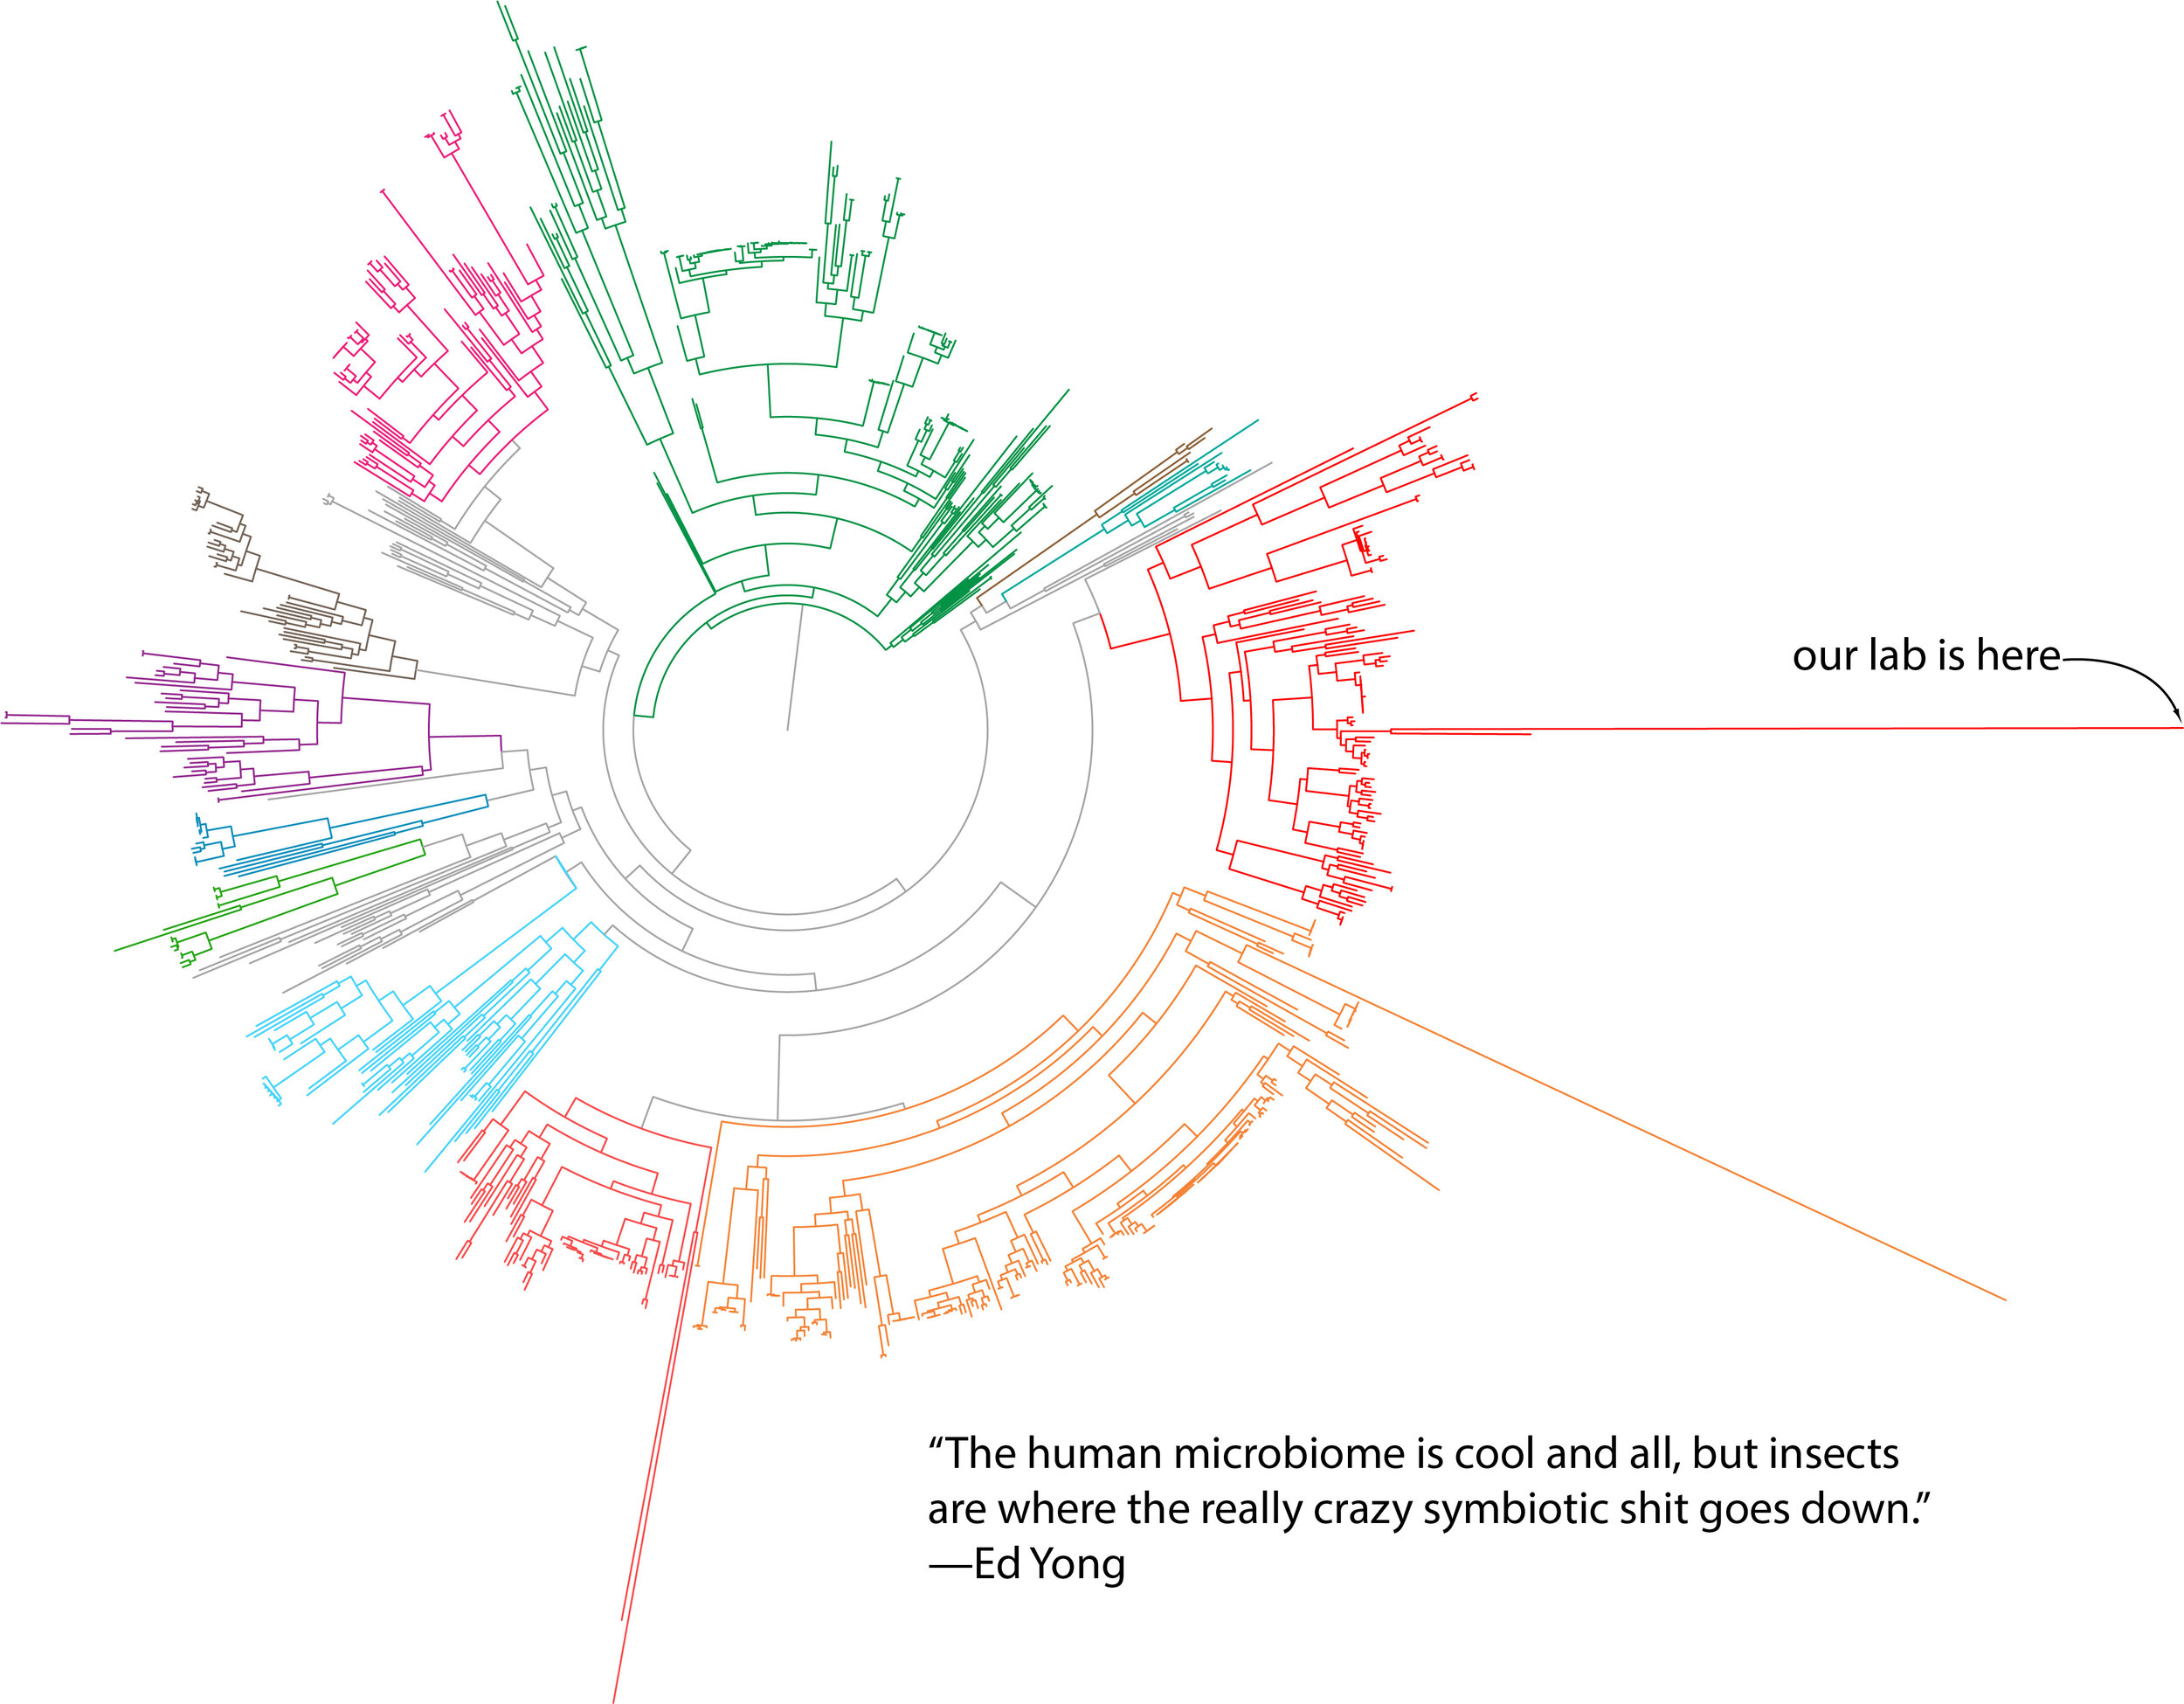 A phylogenetic tree of bacteria, with colors representing various major phyla. The extremely long branches are the bacterial endosymbionts of insects—the bacteria with the smallest genomes, the fastest rates of evolution, and the most dependency on their hosts. (Image adapted from McCutcheon JP and Moran NA. 2012. Extreme genome reduction in symbiotic bacteria.  Nature Reviews Microbiology  10:13-26. The Ed Yong quote is awesome, 100% correct, and is from Twitter, 18 May 2015.)